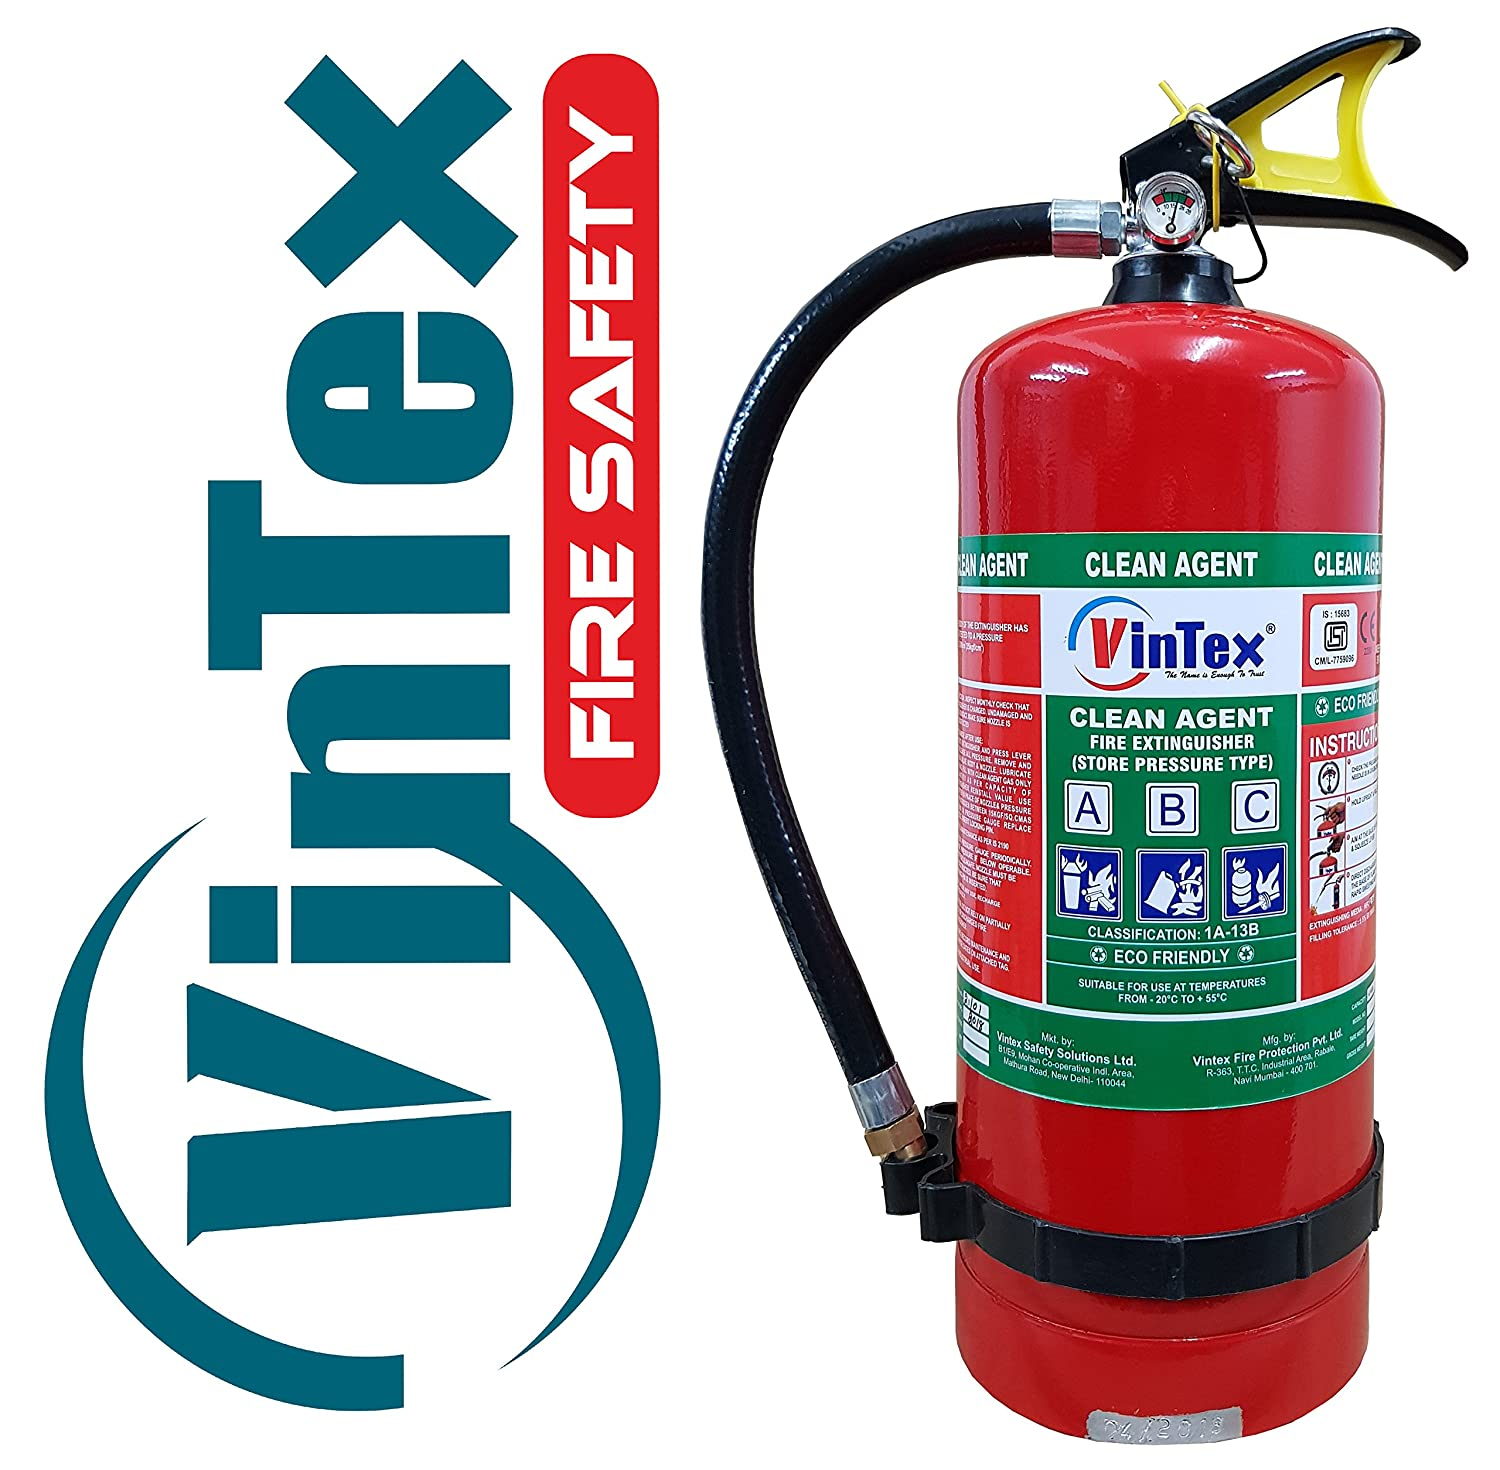 Vintex 4 Kg. Clean Agent Gas Based Eco Friendly Fire Extinguisher ...